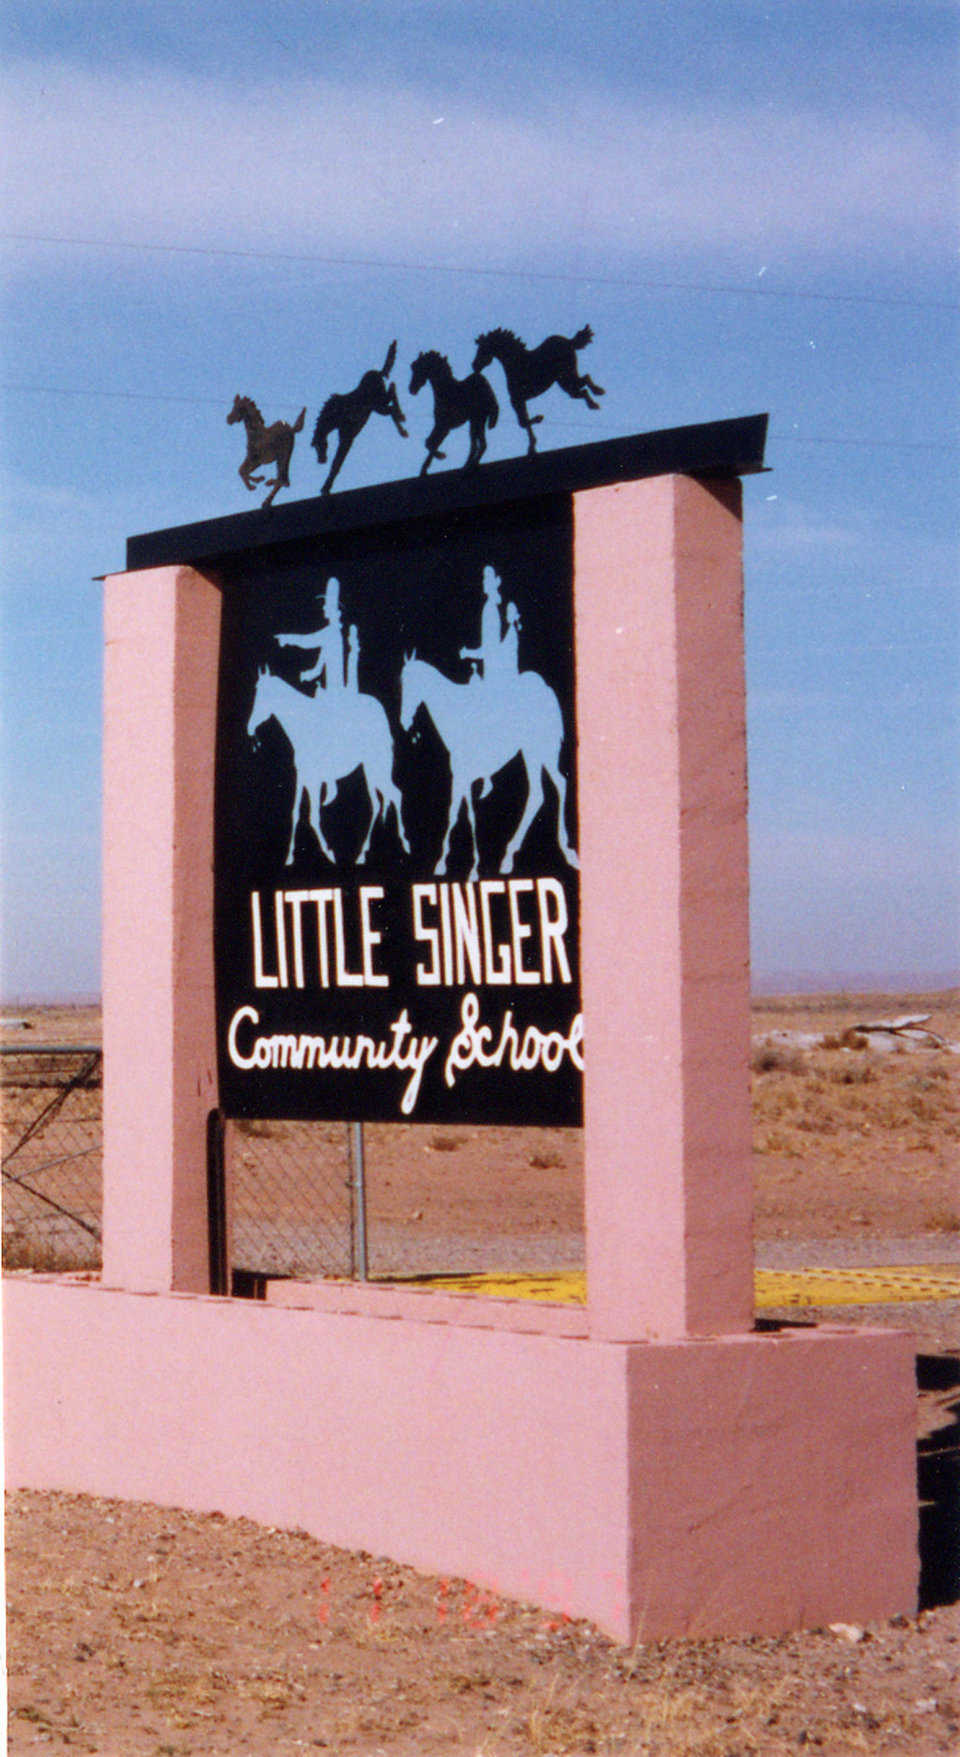 Artsy Entrance — This school was named after Little Singer, a Navajo Medicine Man, who urged the community to build a school.